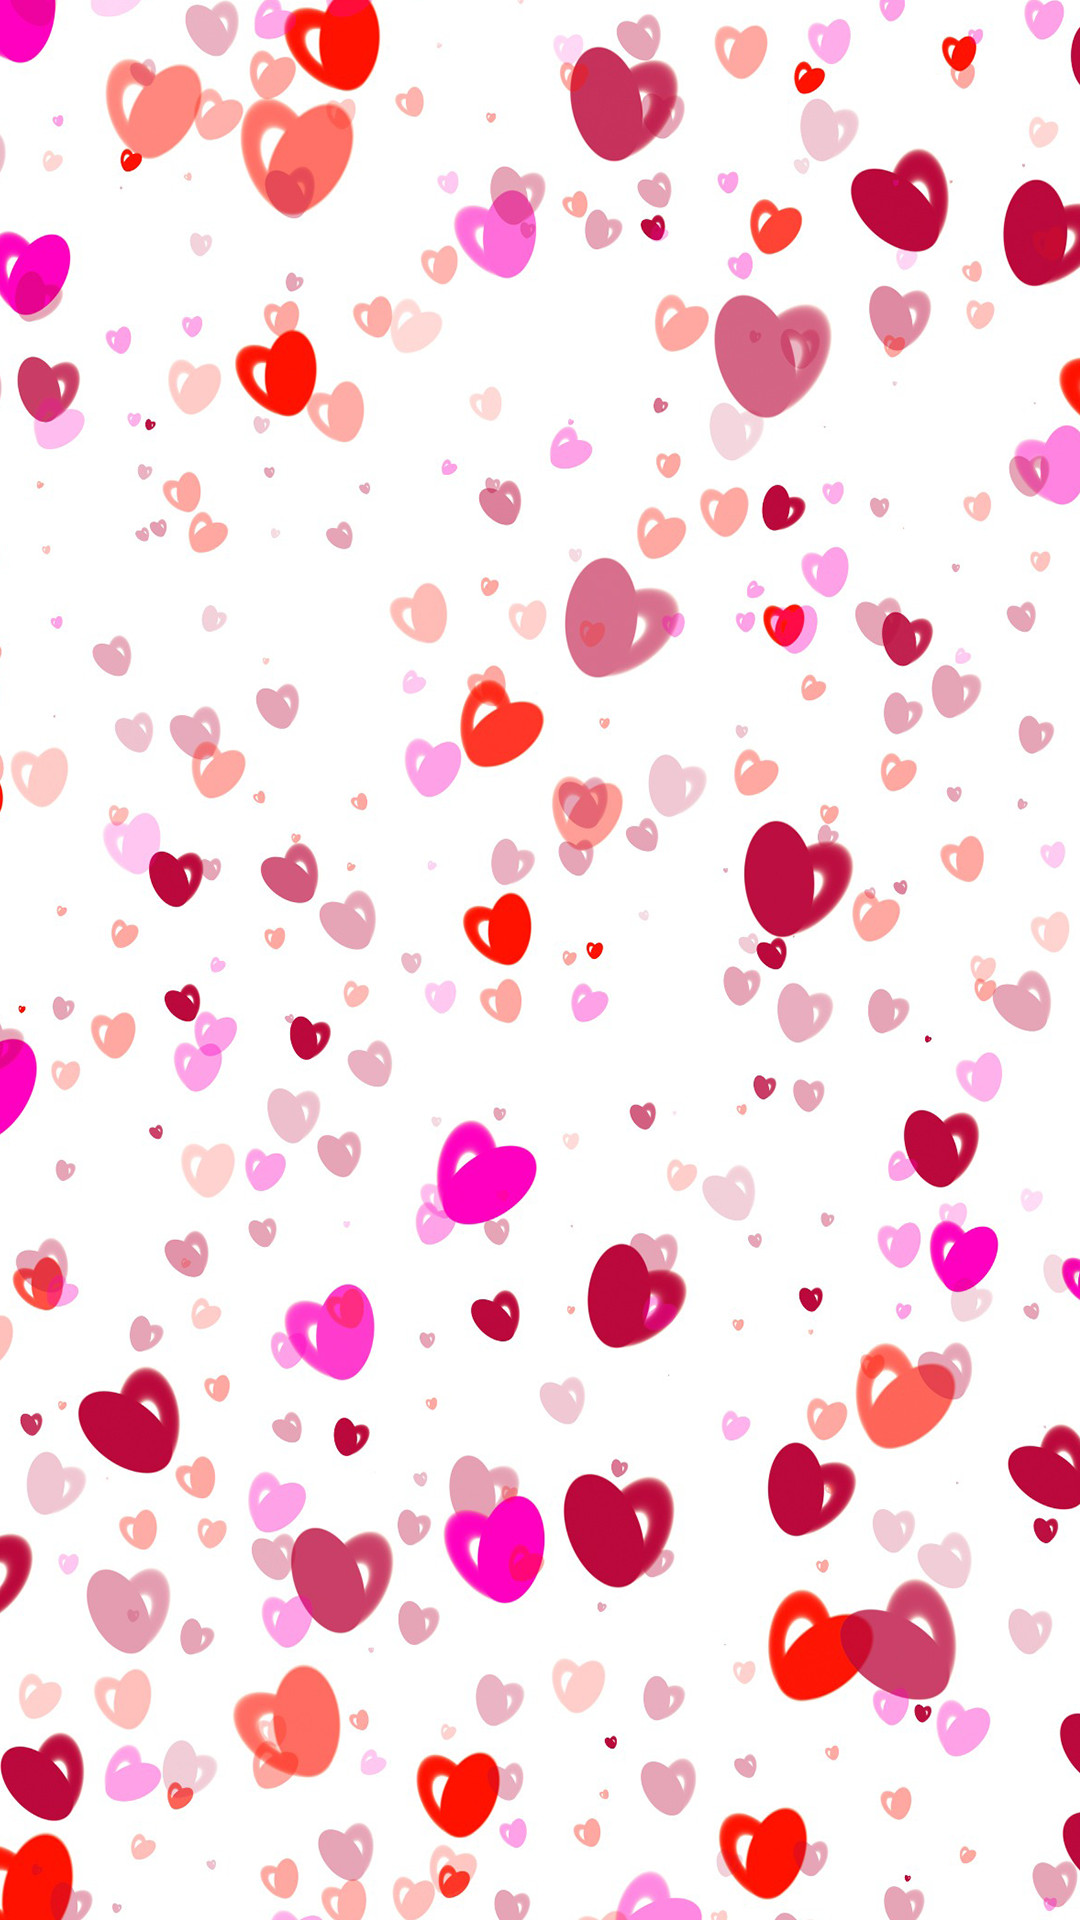 1080x1920 Ultra Hd Painted Love Hearts Wallpaper For Your Mobile Phone 0199